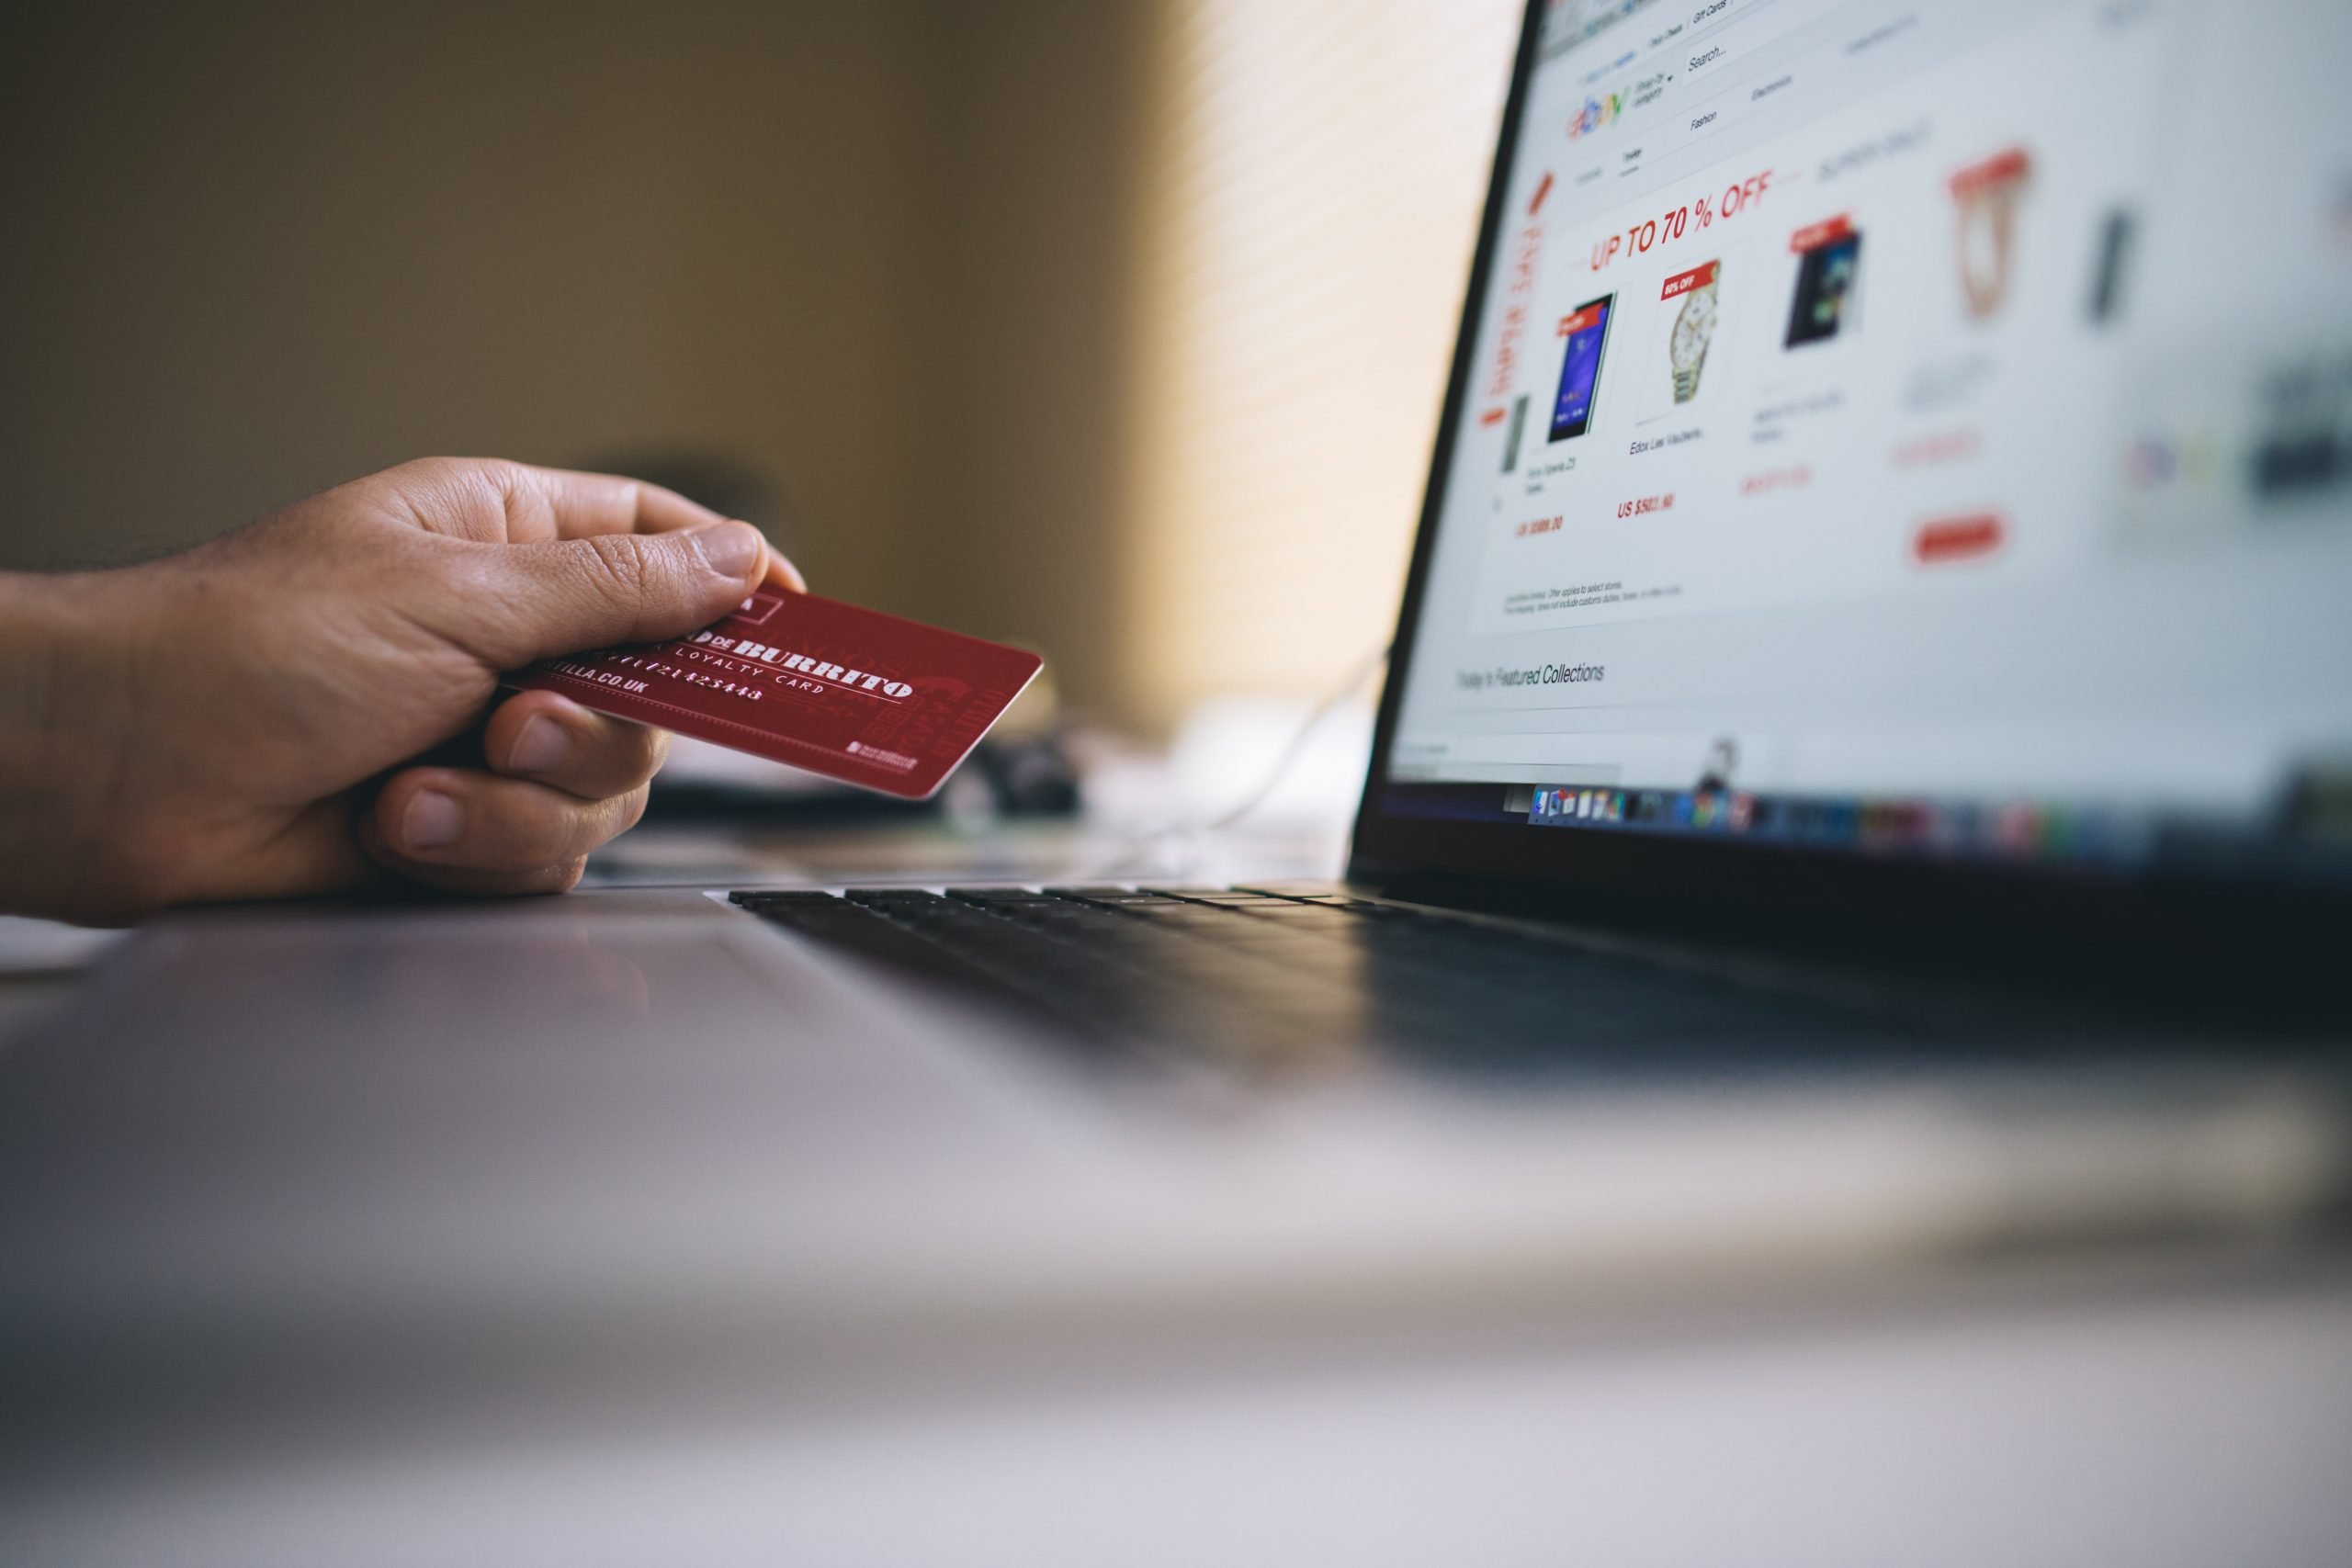 We have ecommerce solutions for your online business